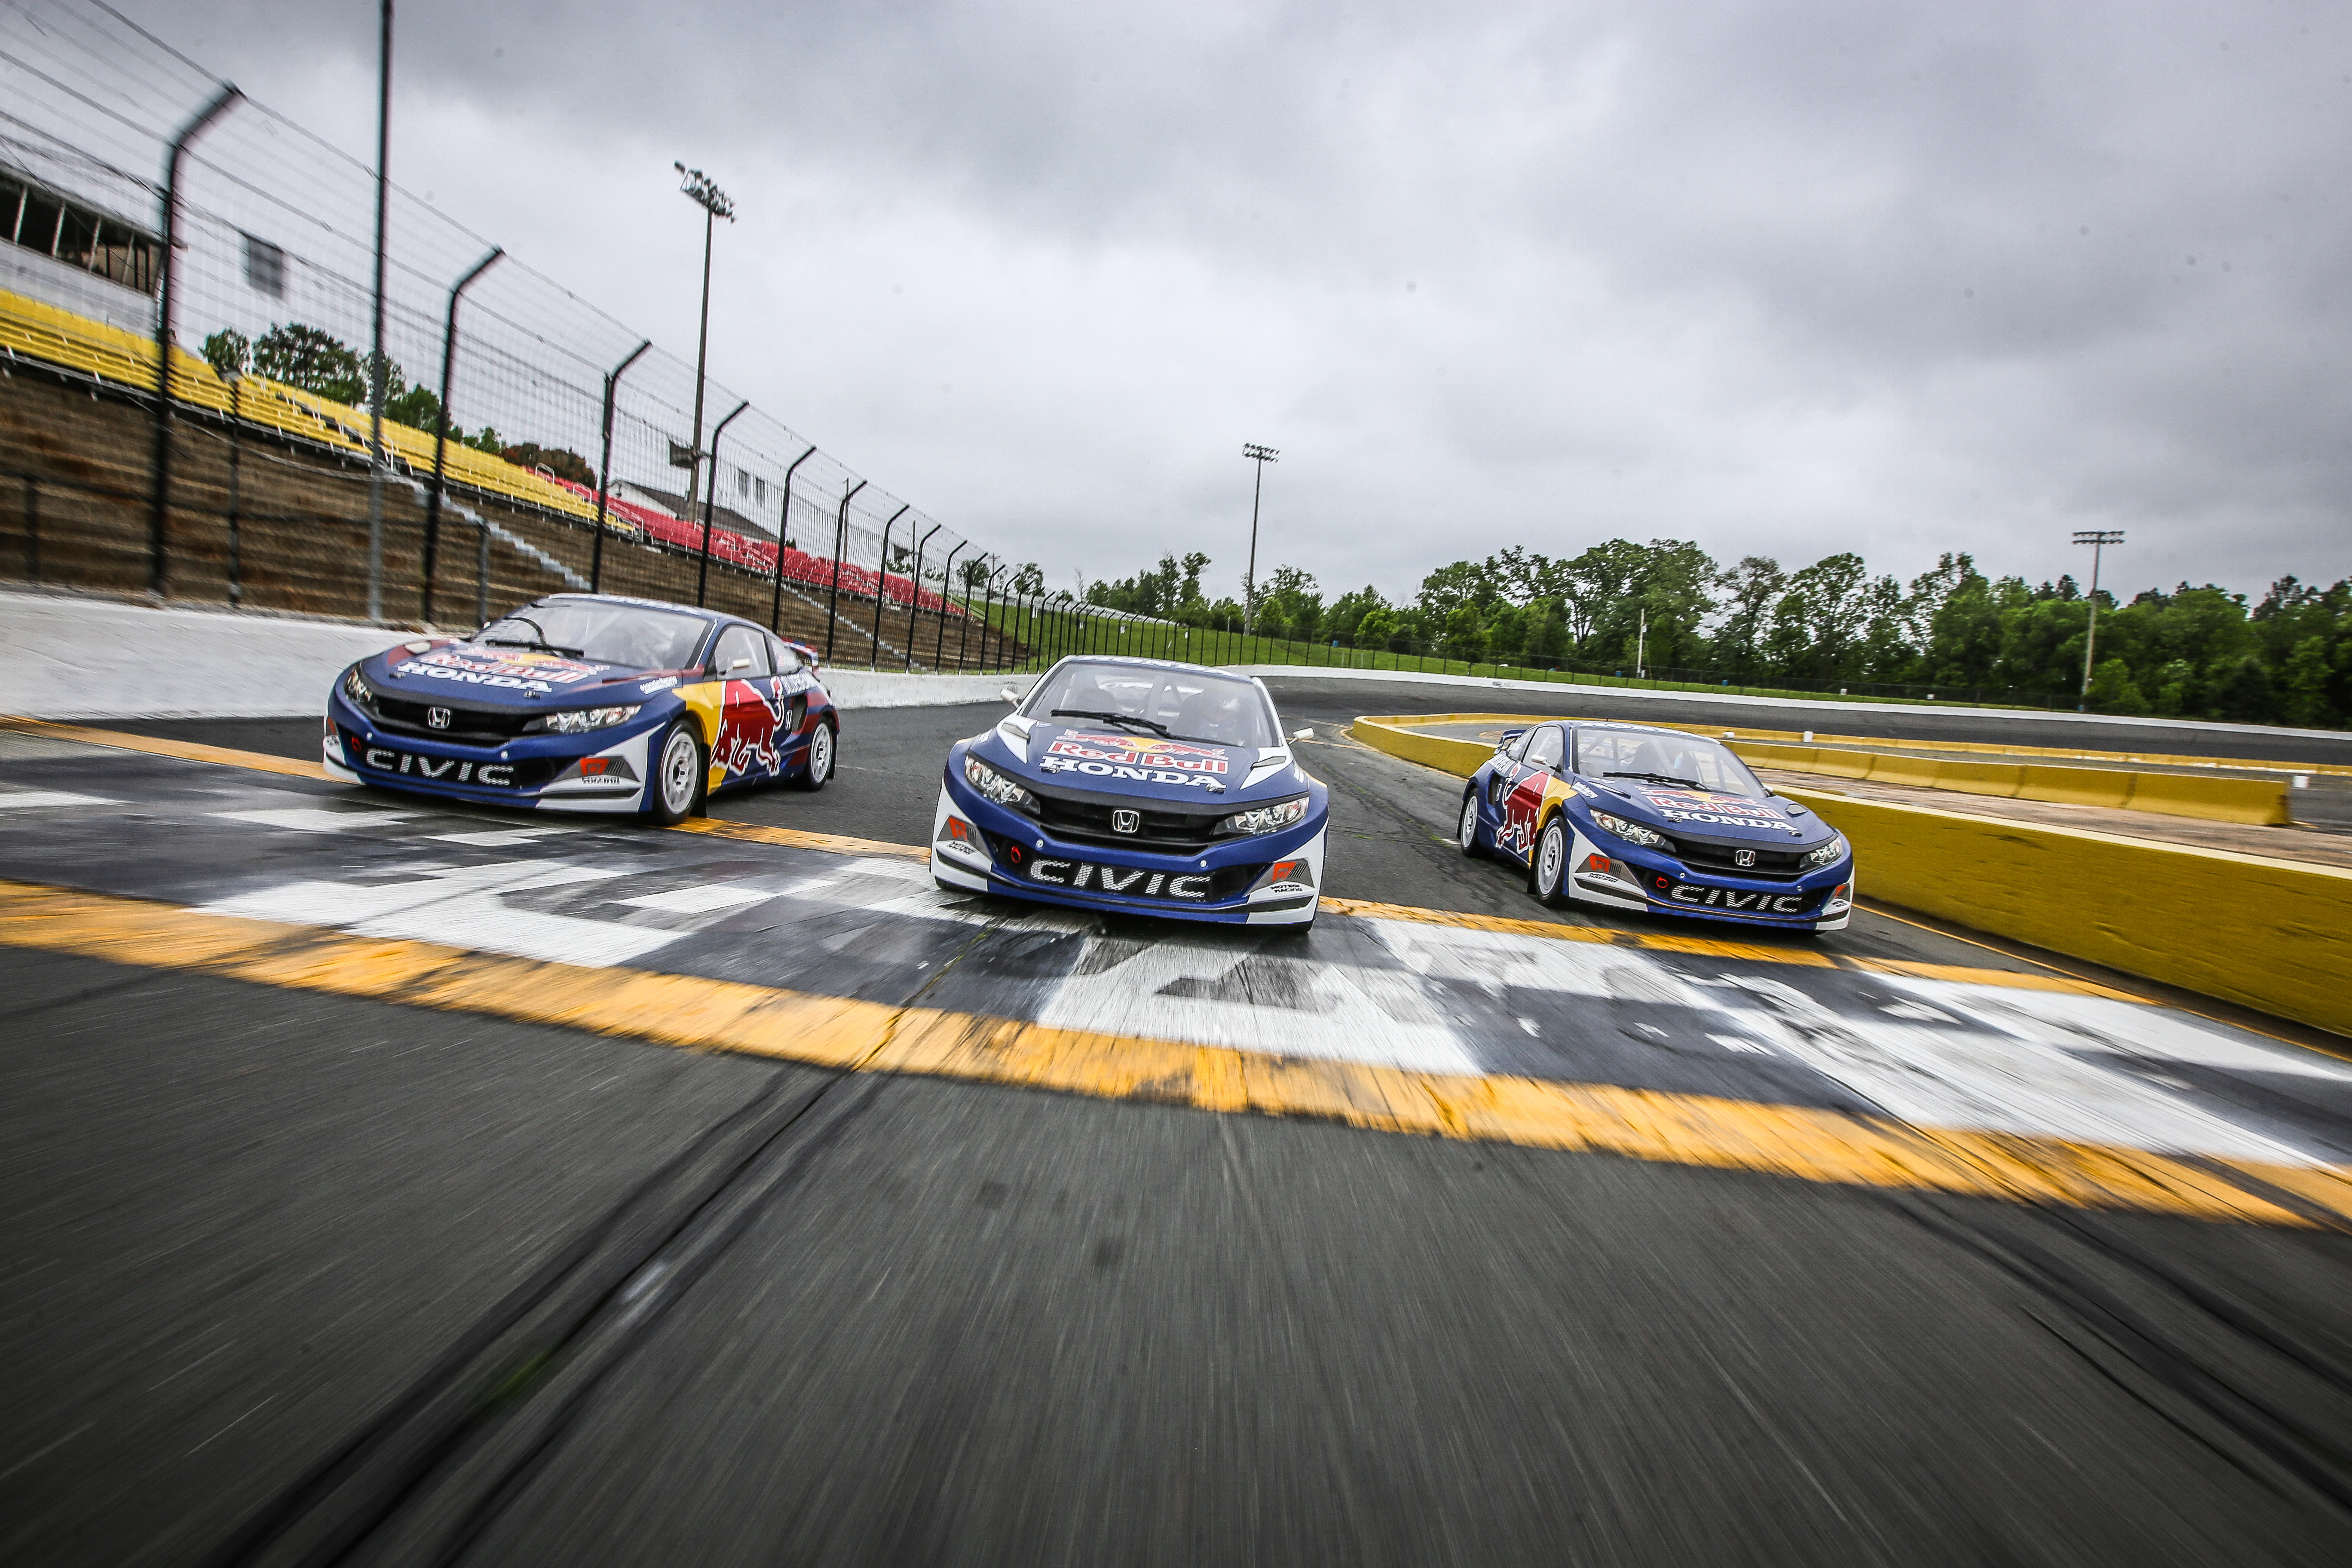 2016 honda civic coupe red bull global rallycross race car debuts in - Honda And Honda Performance Development Announced That Olsbergs Mse Omse Will Field An Expanded Lineup Of Three Talente Young Drivers For The 2017 Red